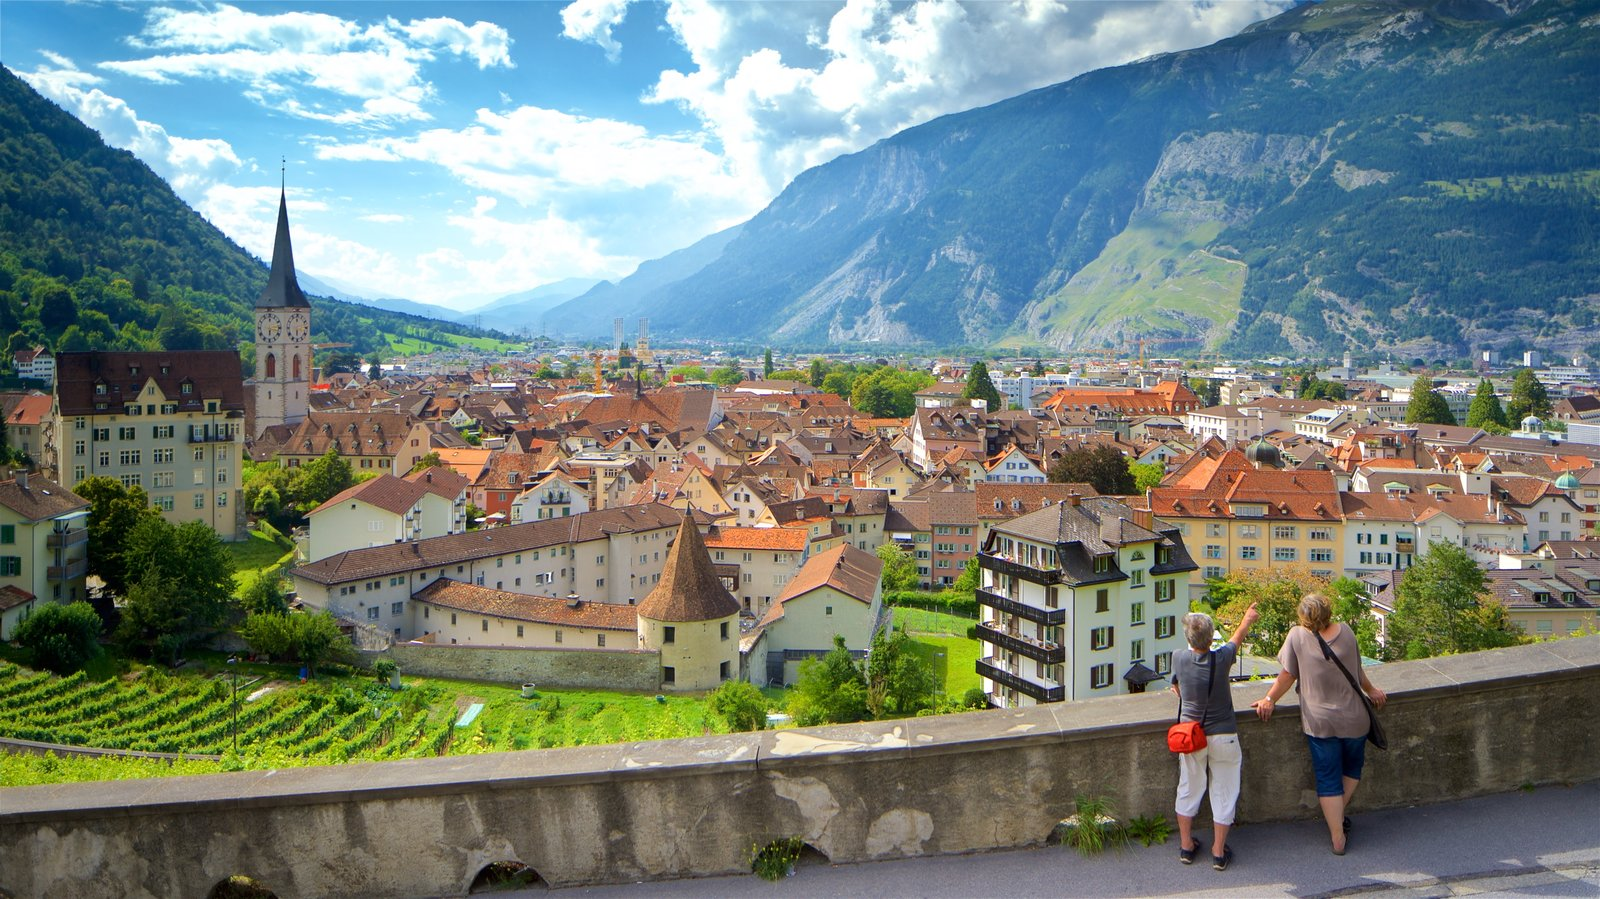 Chur featuring a small town or village, landscape views and mountains